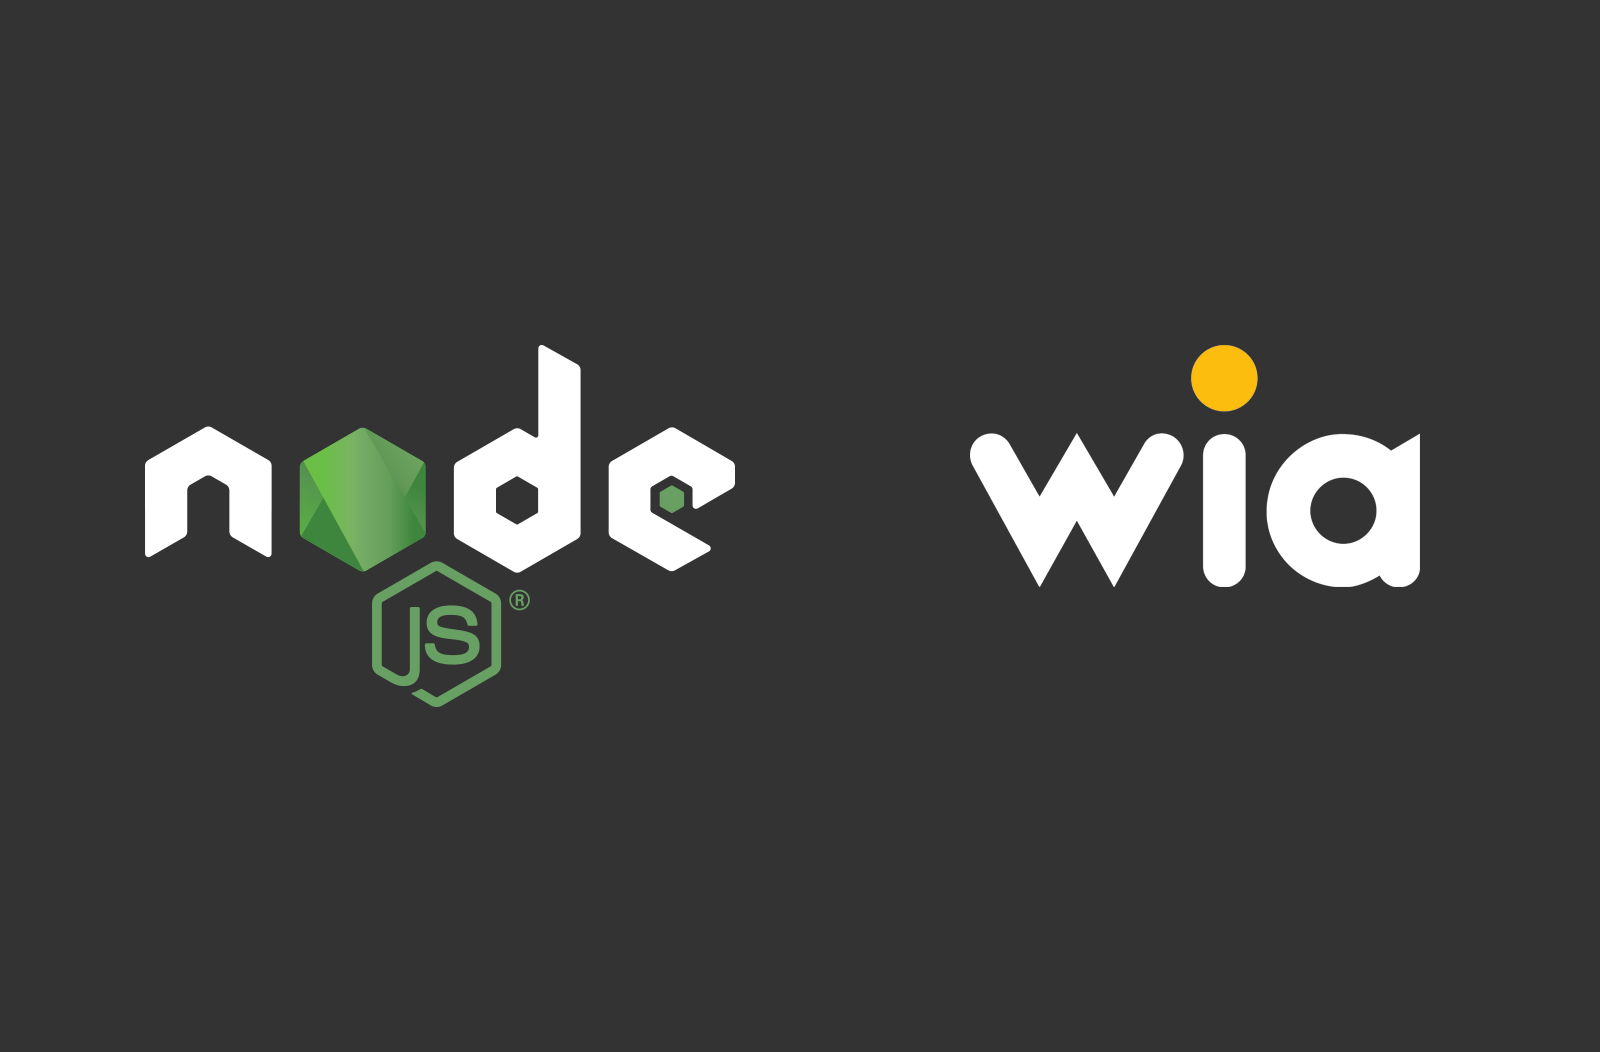 Wia and Node.js